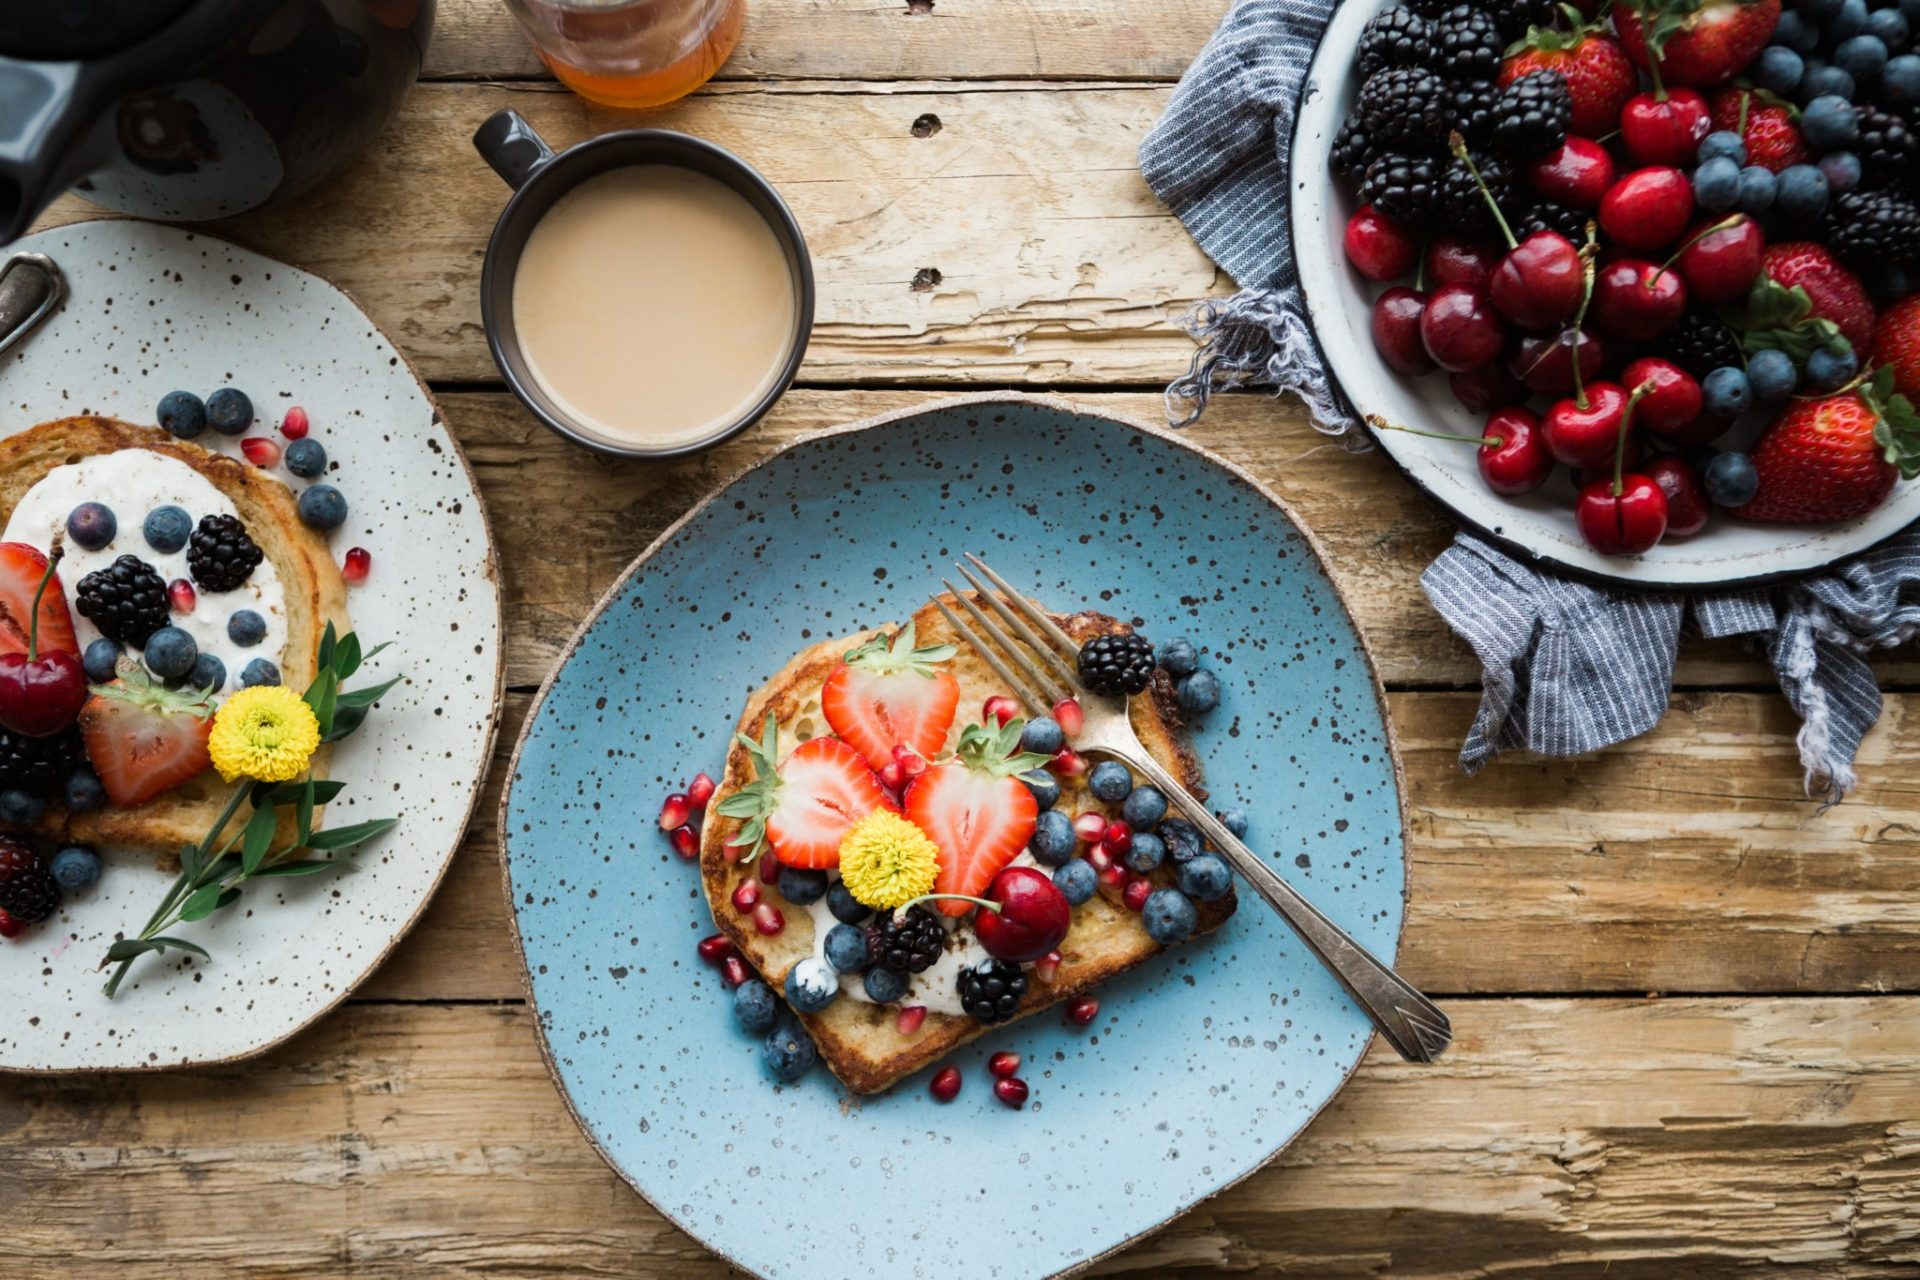 The Frugal Foodie: Tips That Won't Disappoint Your Taste Buds